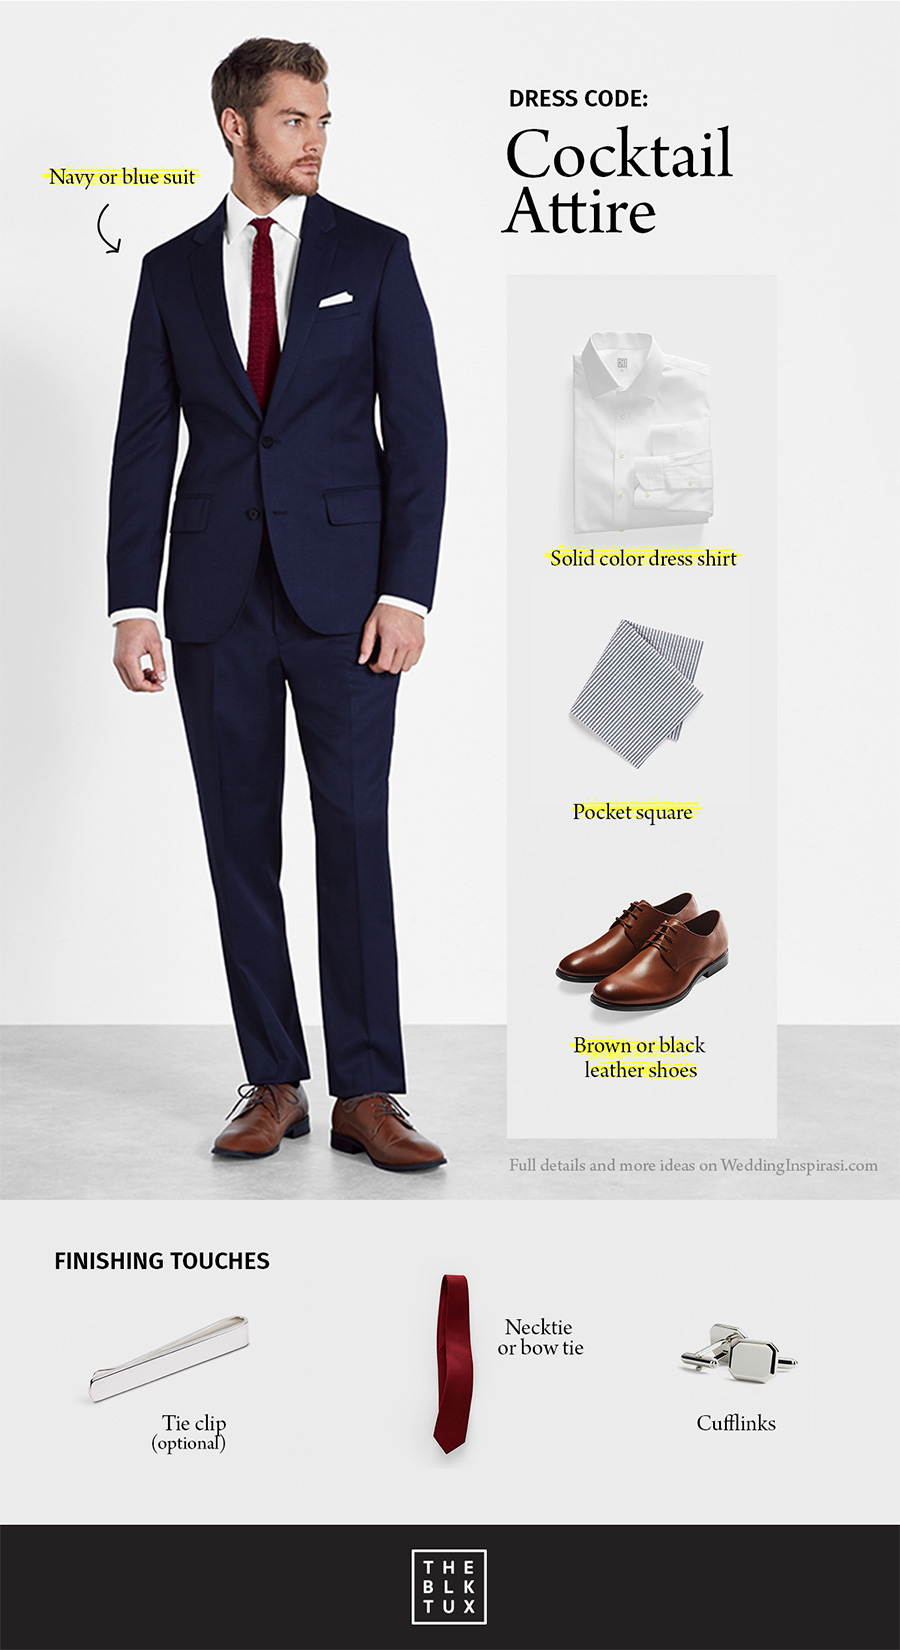 Decoding Dress Codes? Get Smart with The Black Tux | Wedding Inspirasi